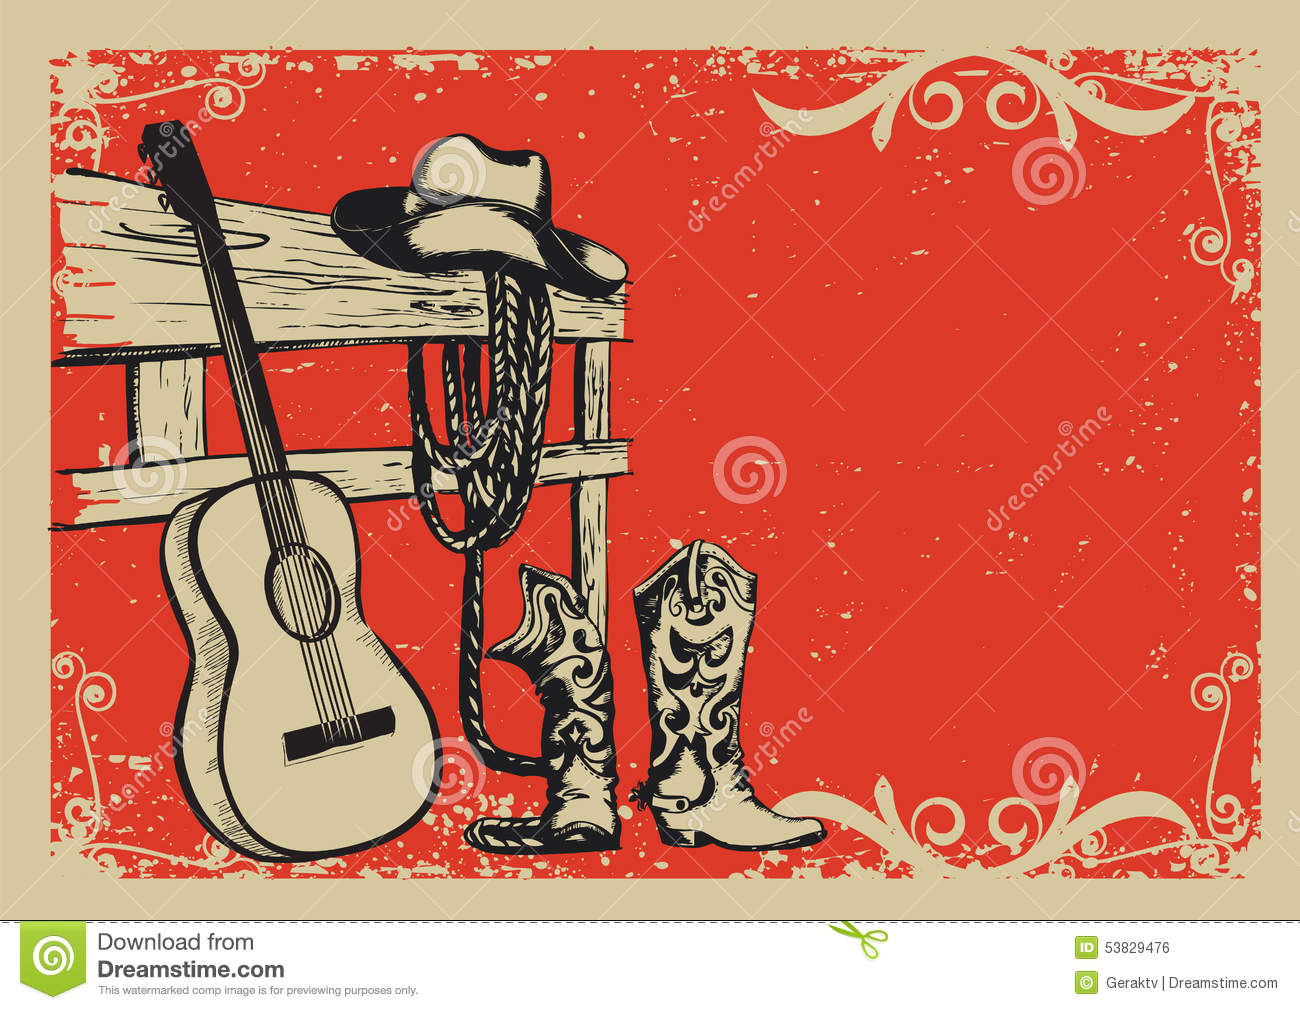 Vintage Poster With Cowboy Clothes And Music Guitar Stock Vector